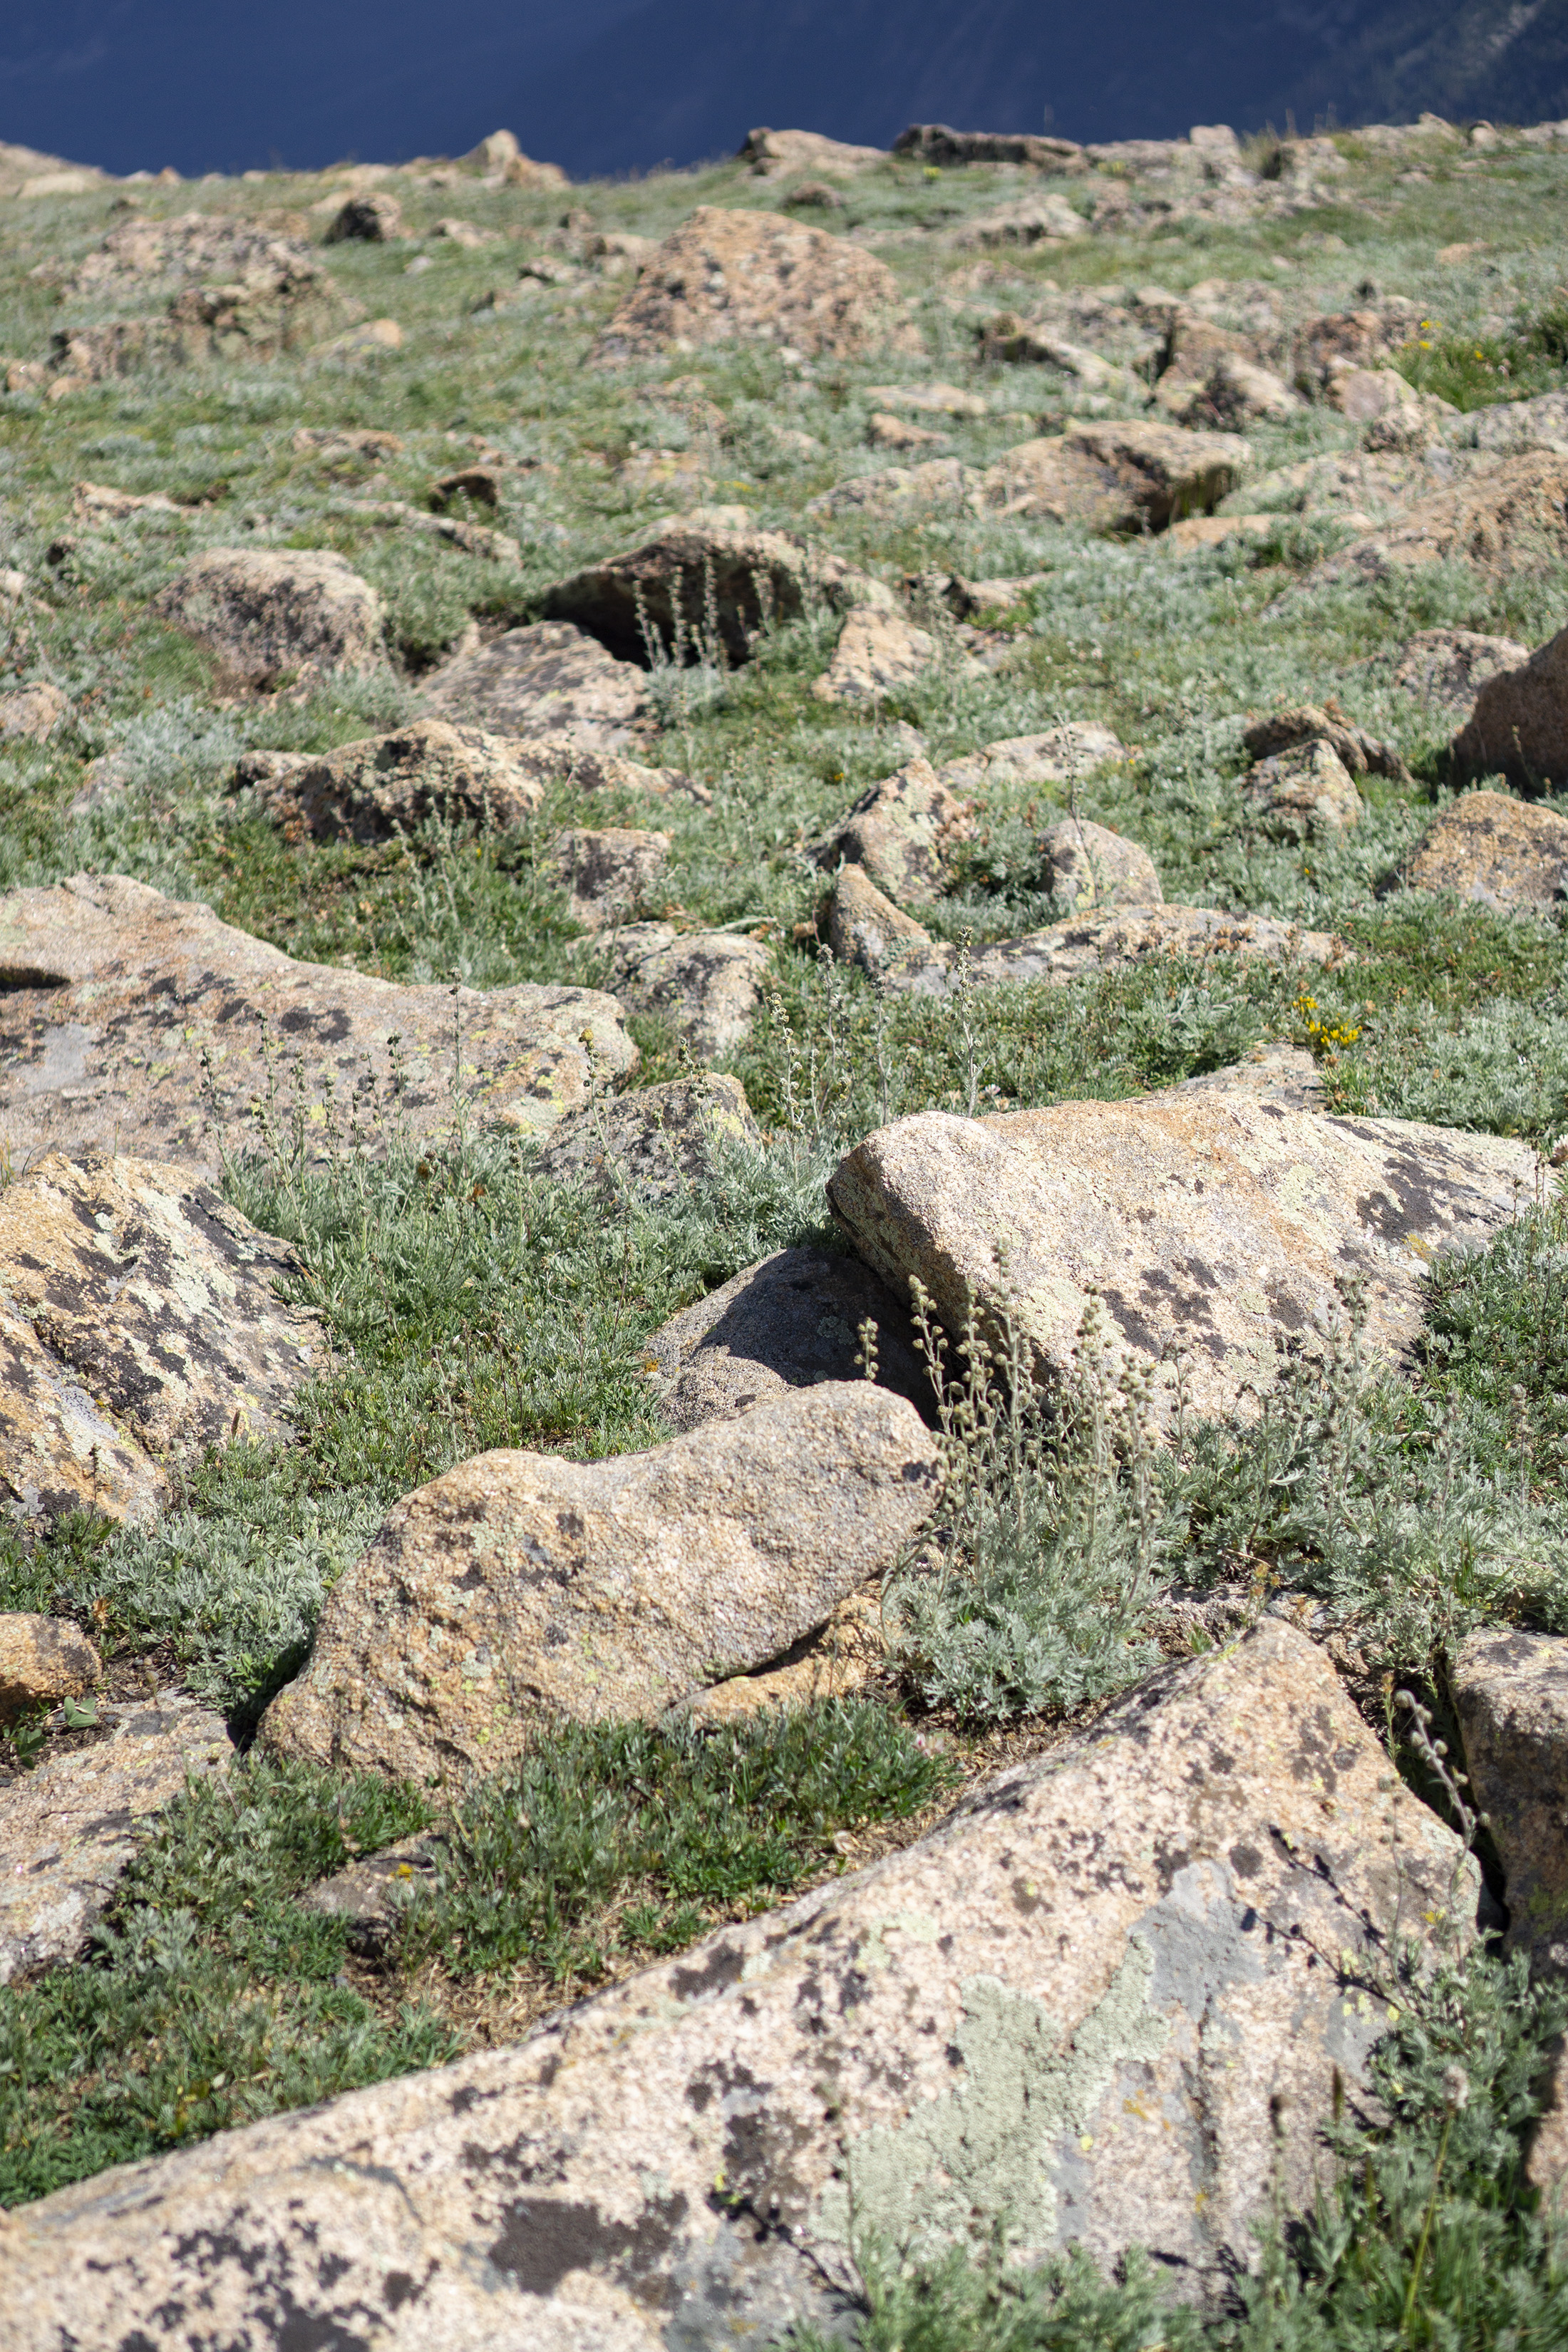 Low growing alpine plants between the rocks in the tundra, Rocky Mountain National Park / Darker than Green